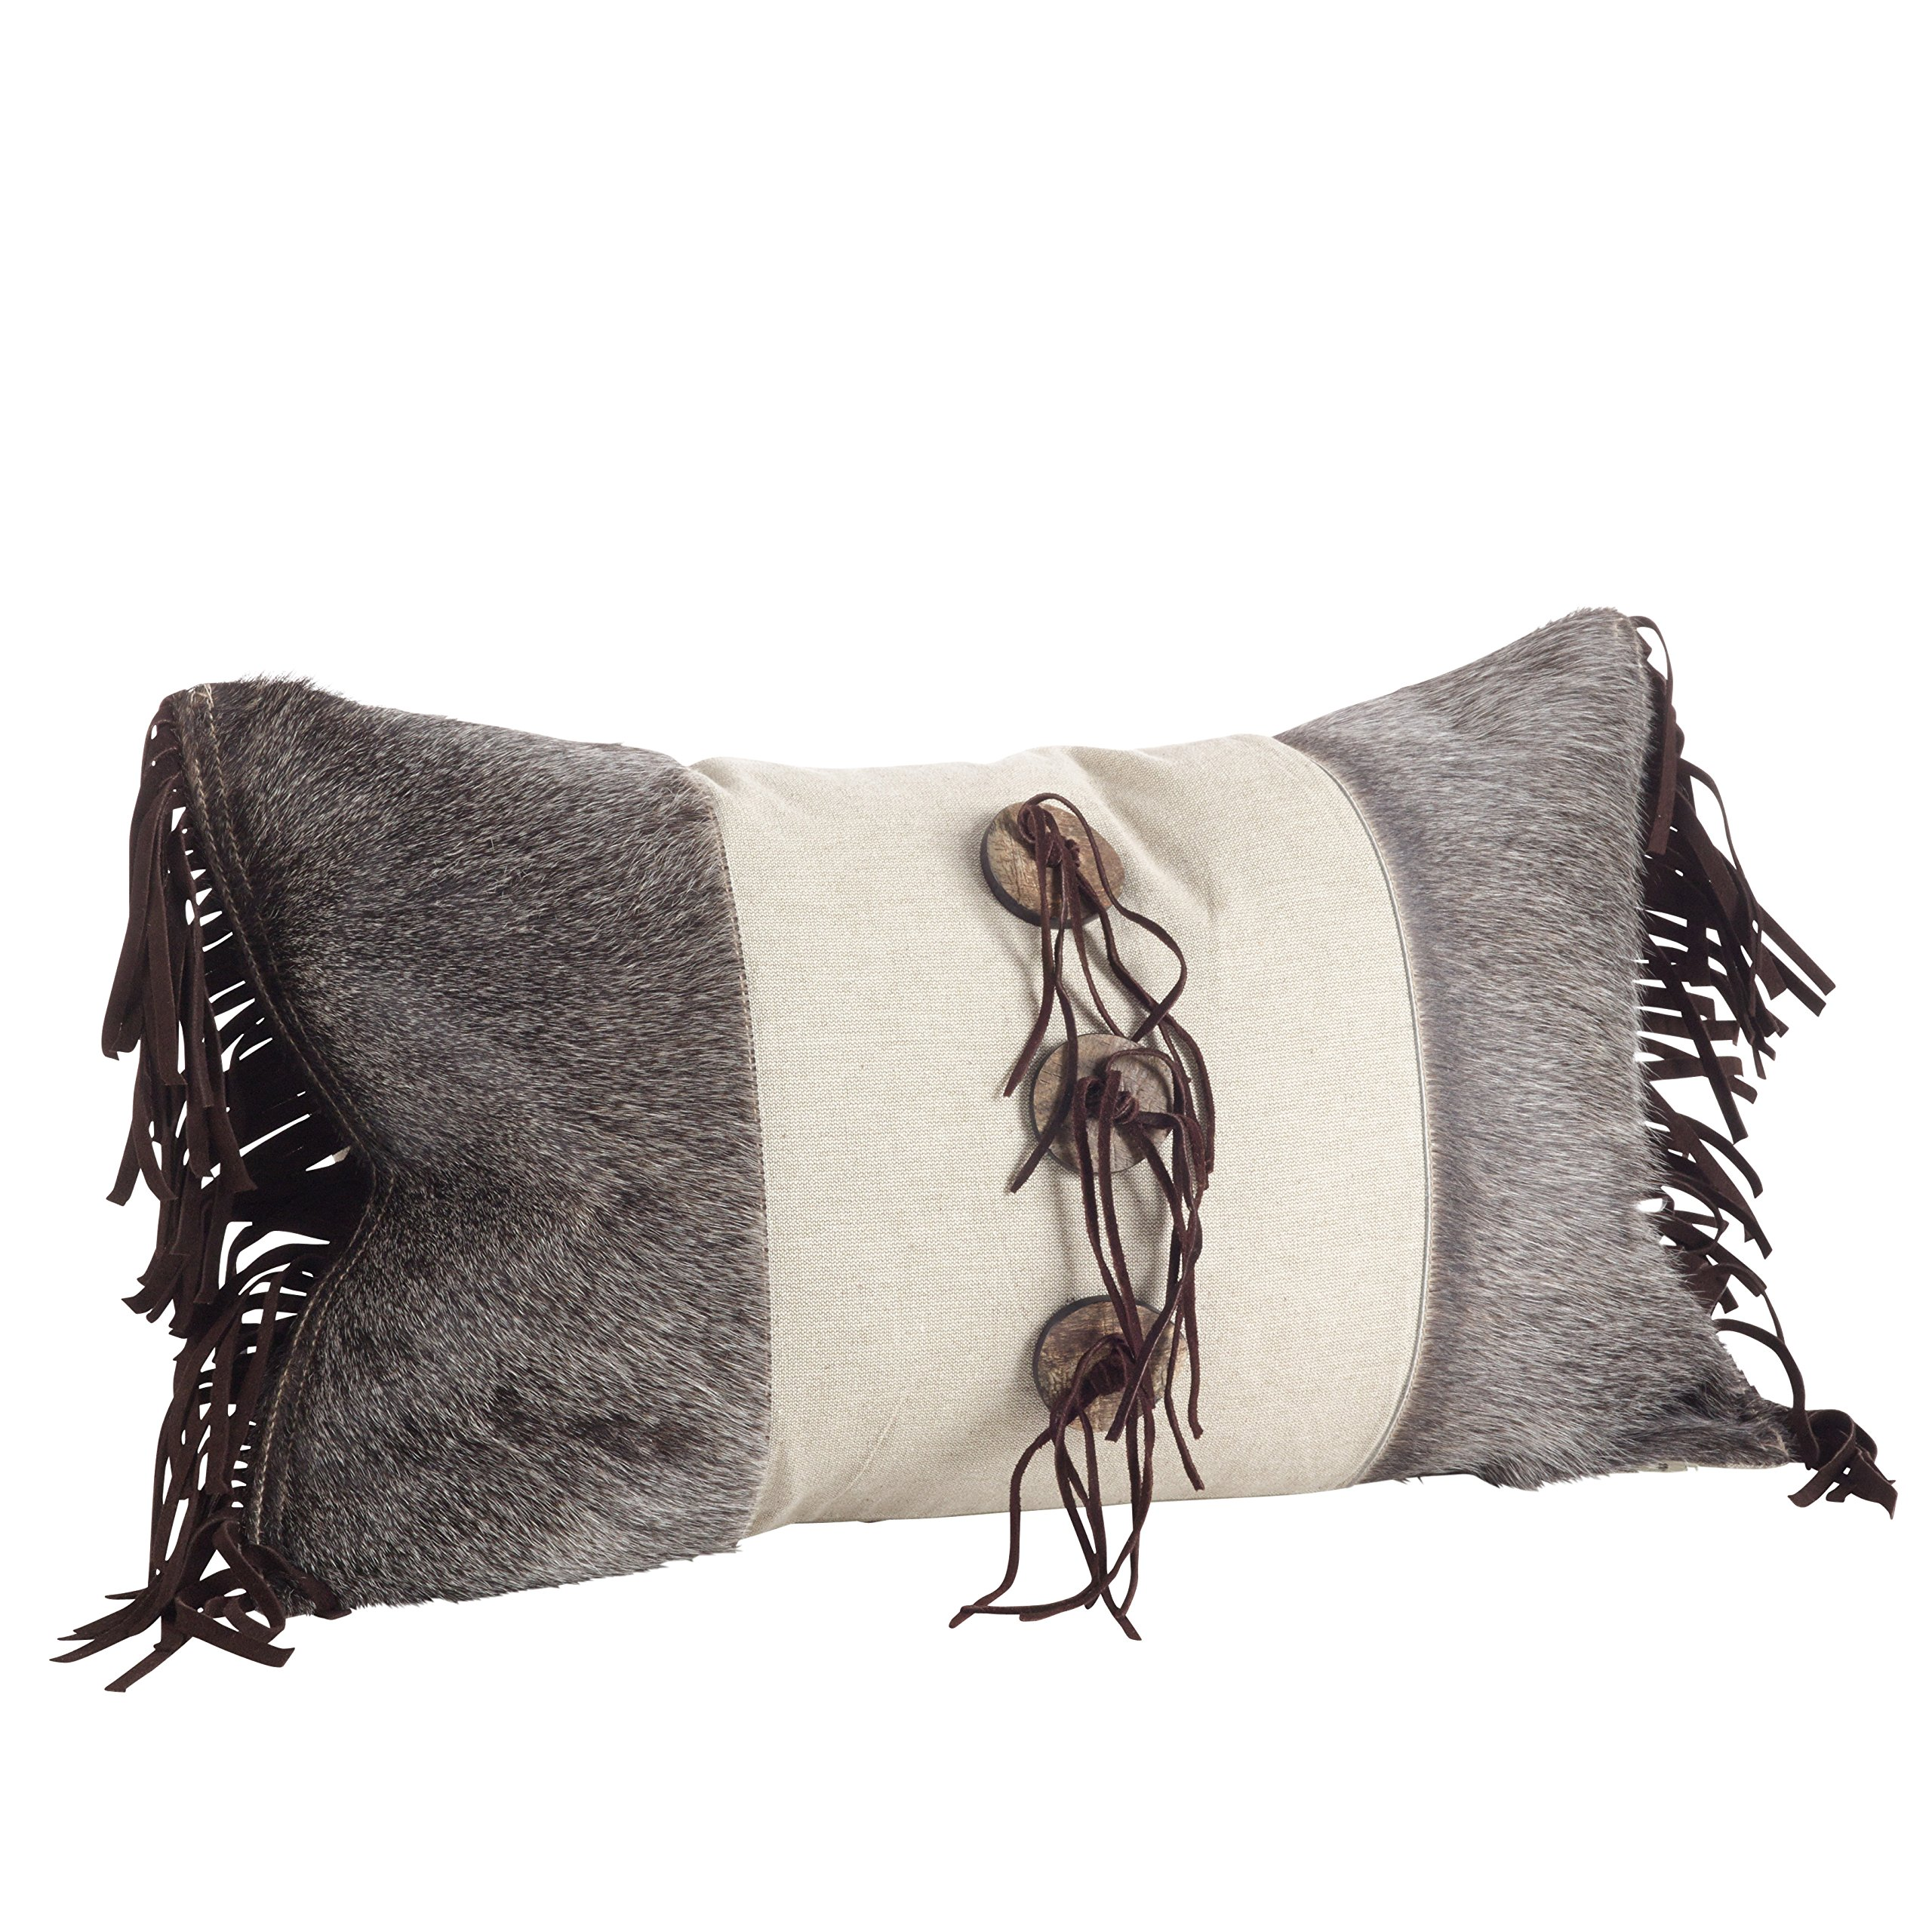 SARO LIFESTYLE 1375.N1220B Cowhide Leather Suede Fringe Down Filled Throw Pillow, Natural, 12'' x 20'' by SARO LIFESTYLE